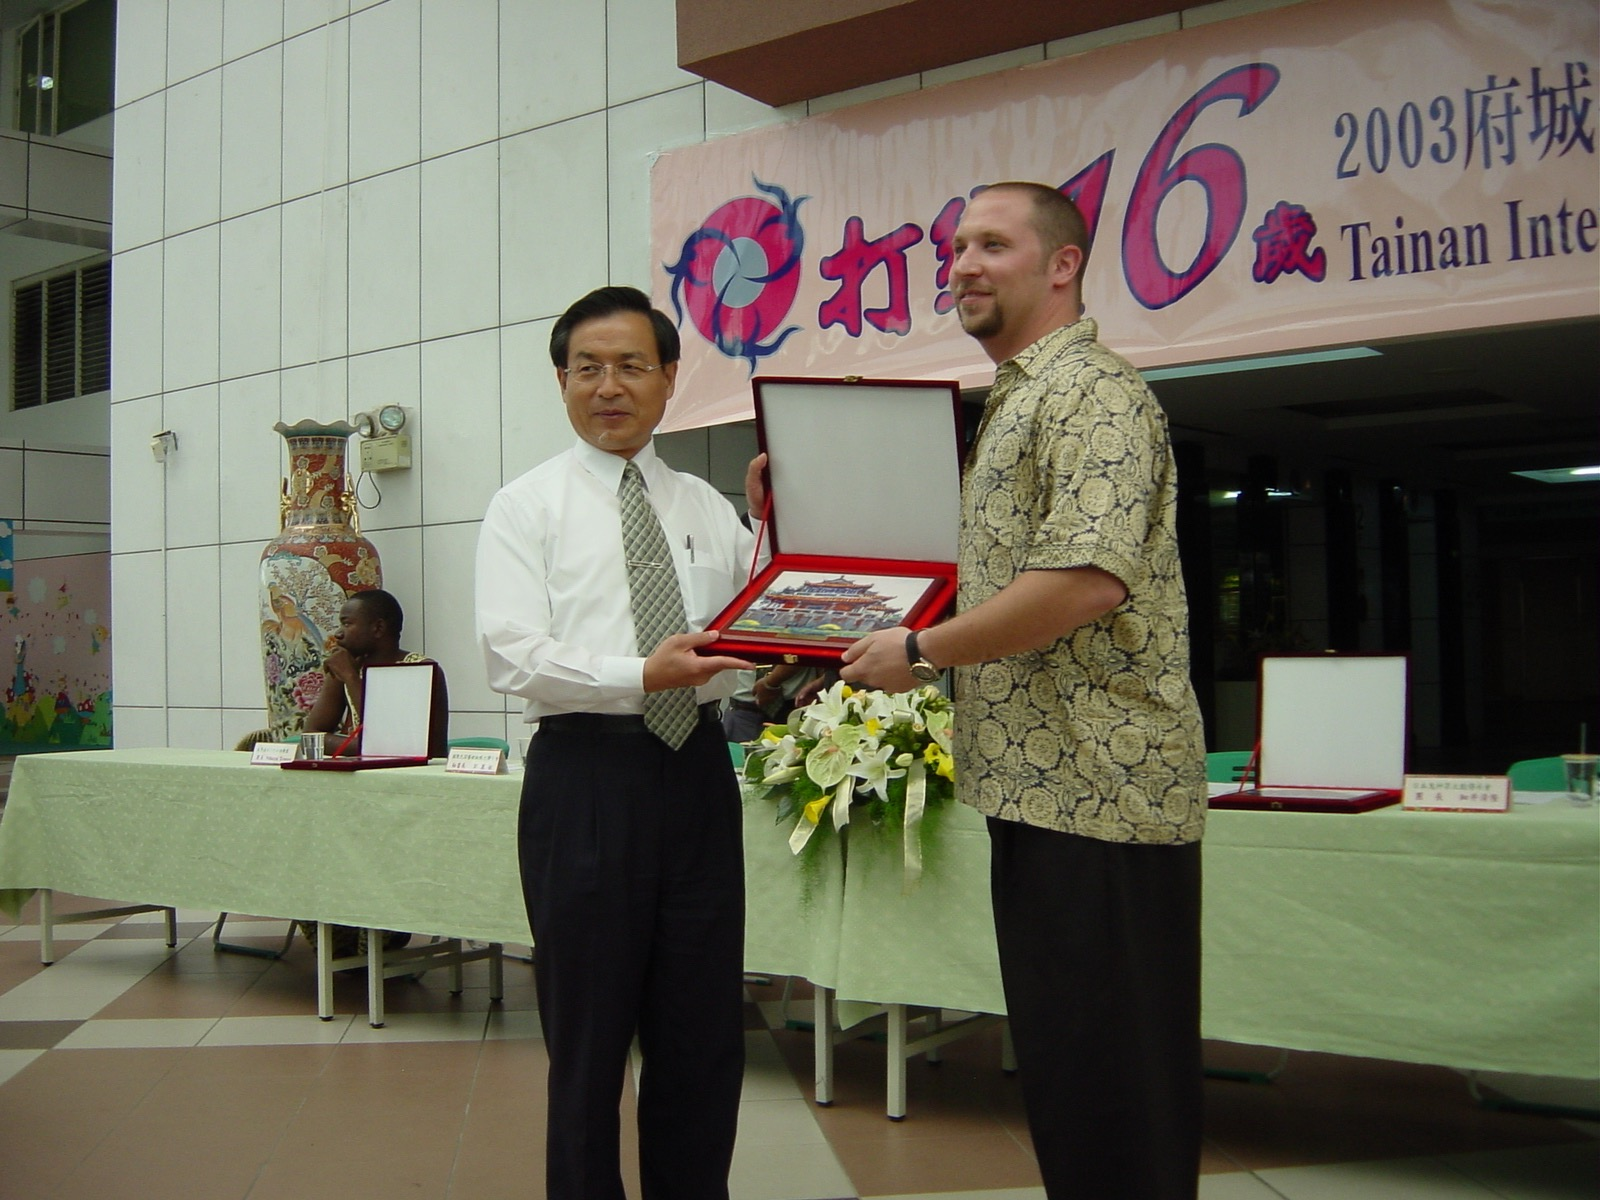 Randy receiving a gift from the Mayor of Tainan city. Taiwan, 2003